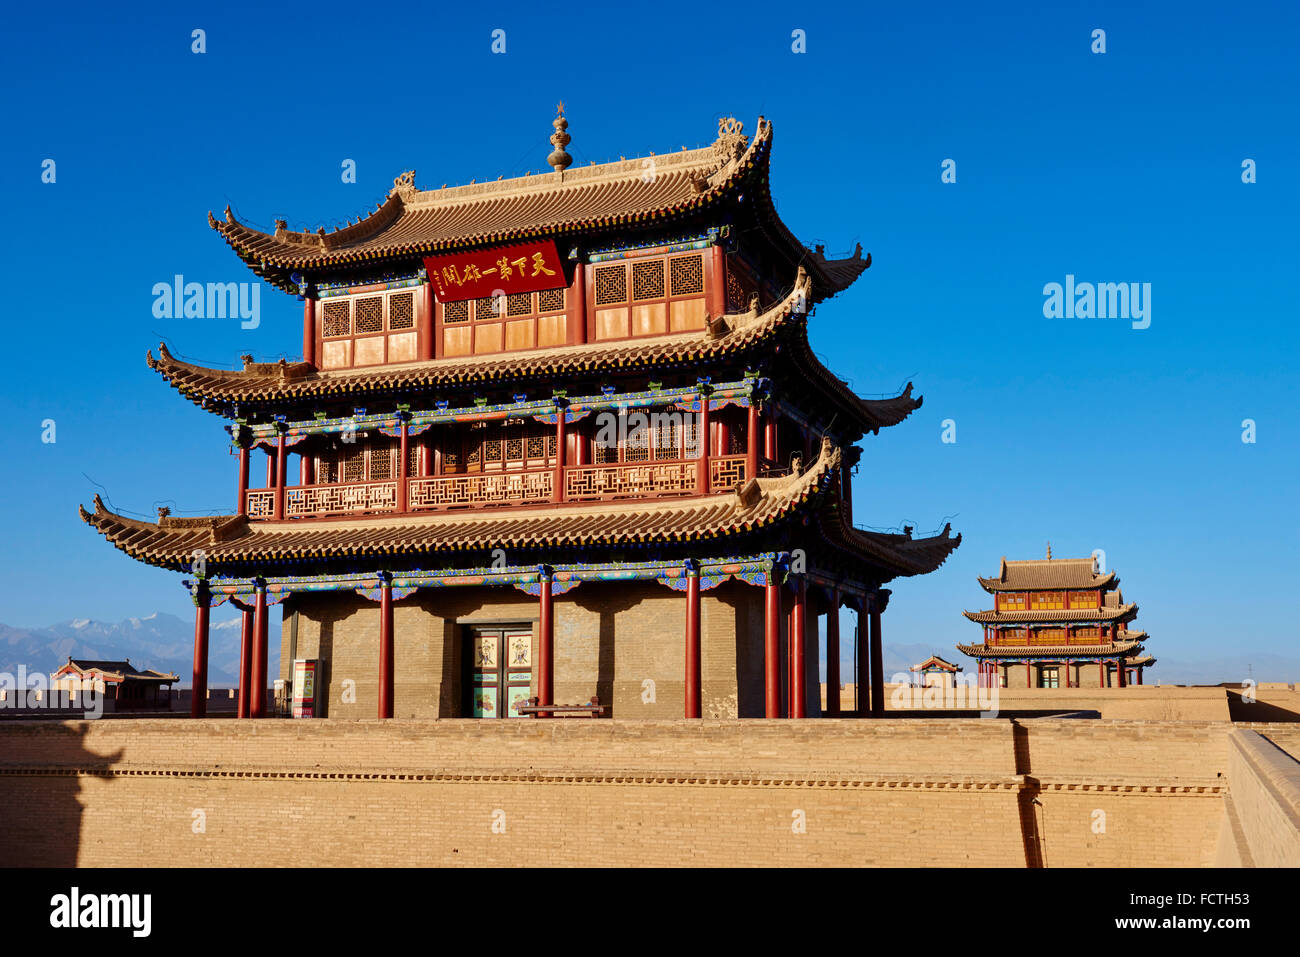 China, Gansu province, Jiayuguan, the fortress at the western end of the Great Wall, Unesco world heritage - Stock Image